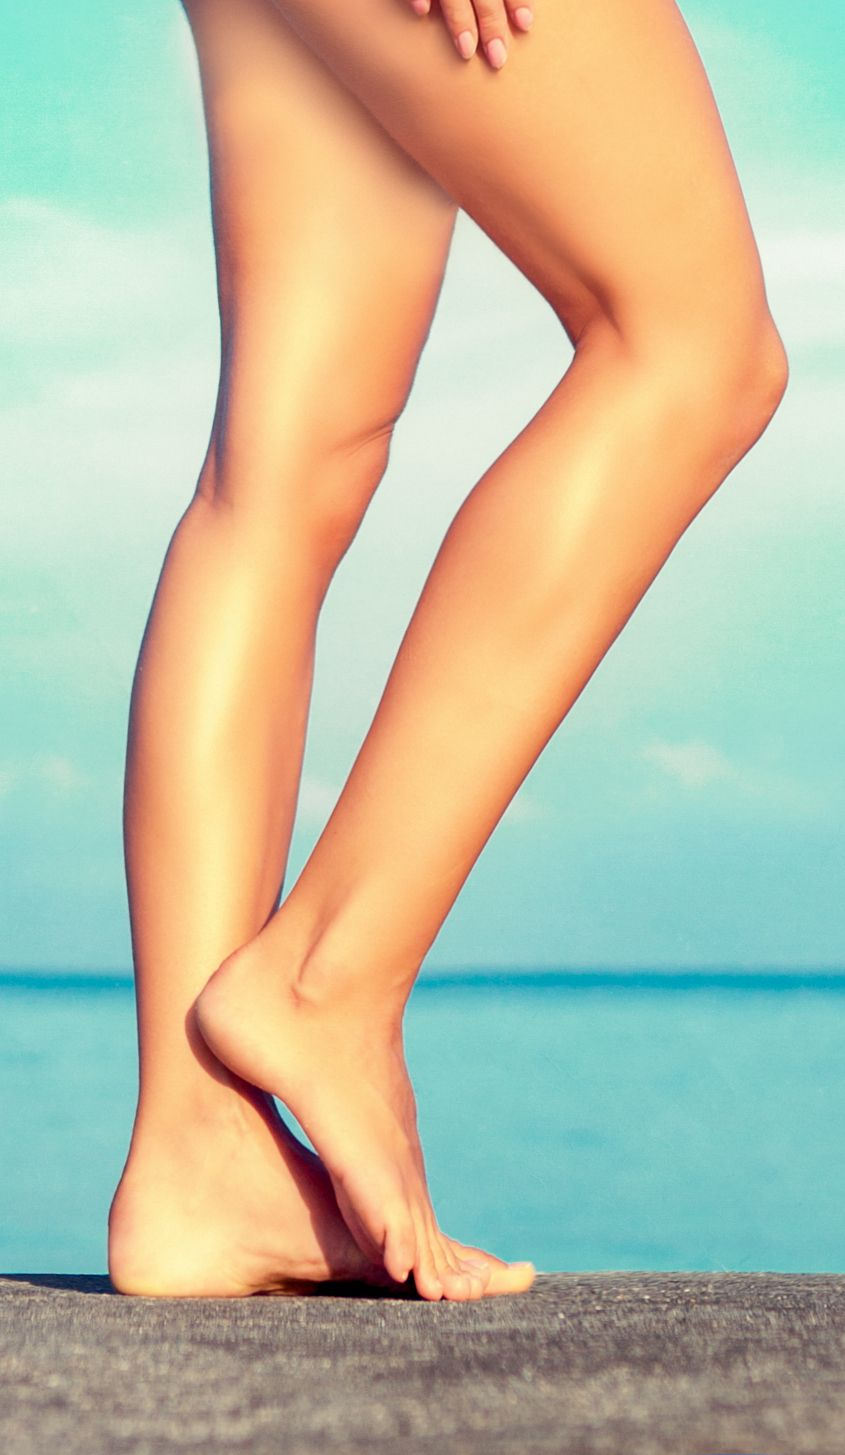 How to determine if you have flat feet flat feet